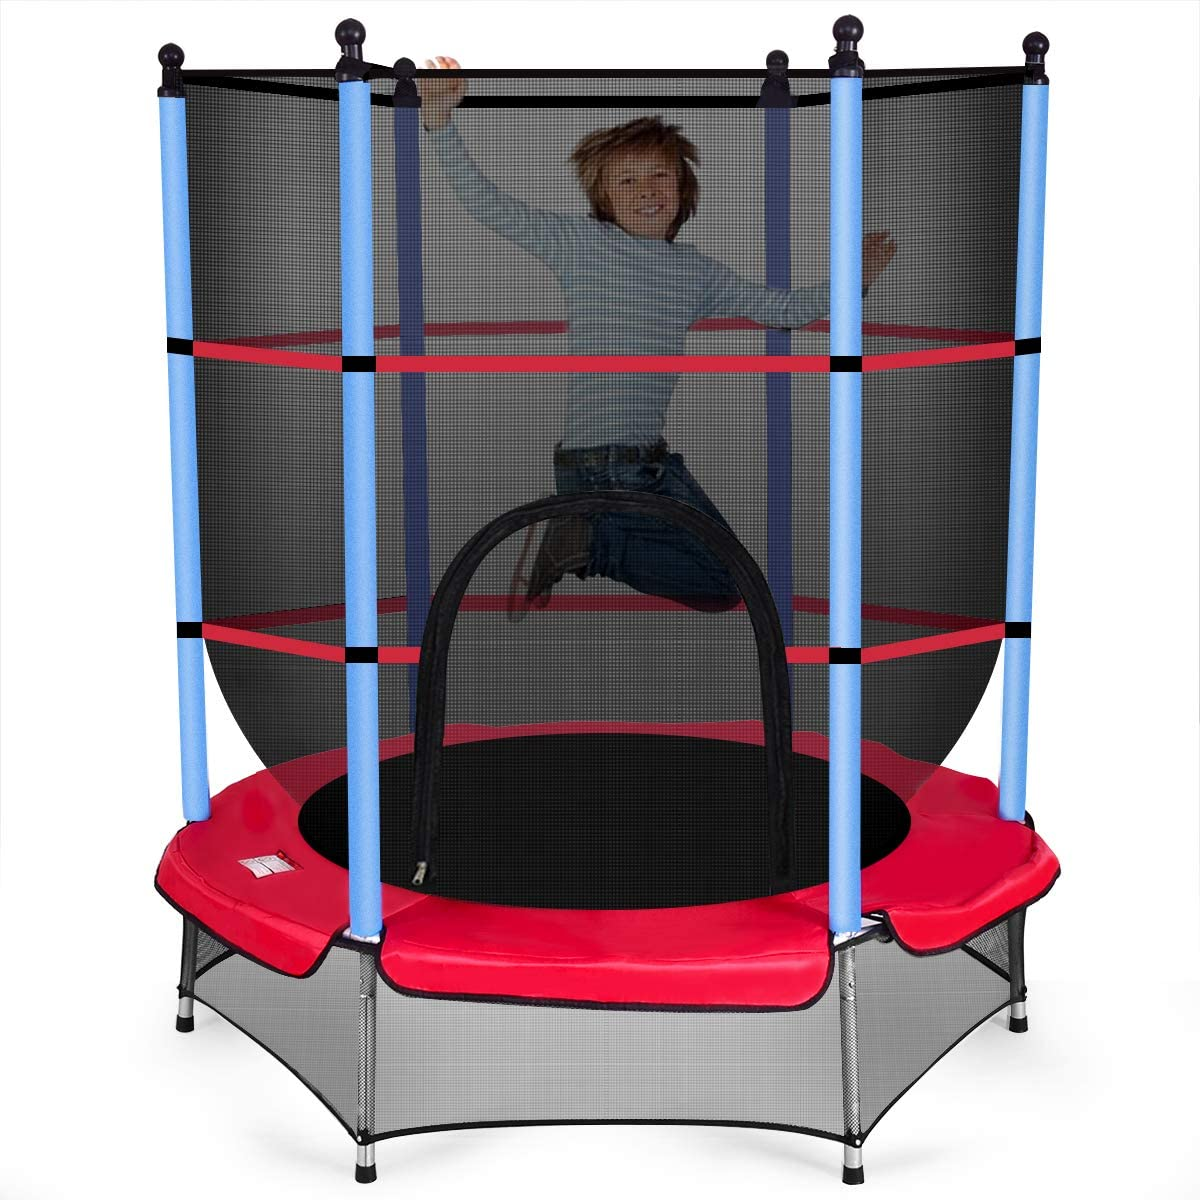 GYMAX Trampoline for Kids, 55 Round Rebounder Exercise Trampoline with Safety Pad Enclosure Net